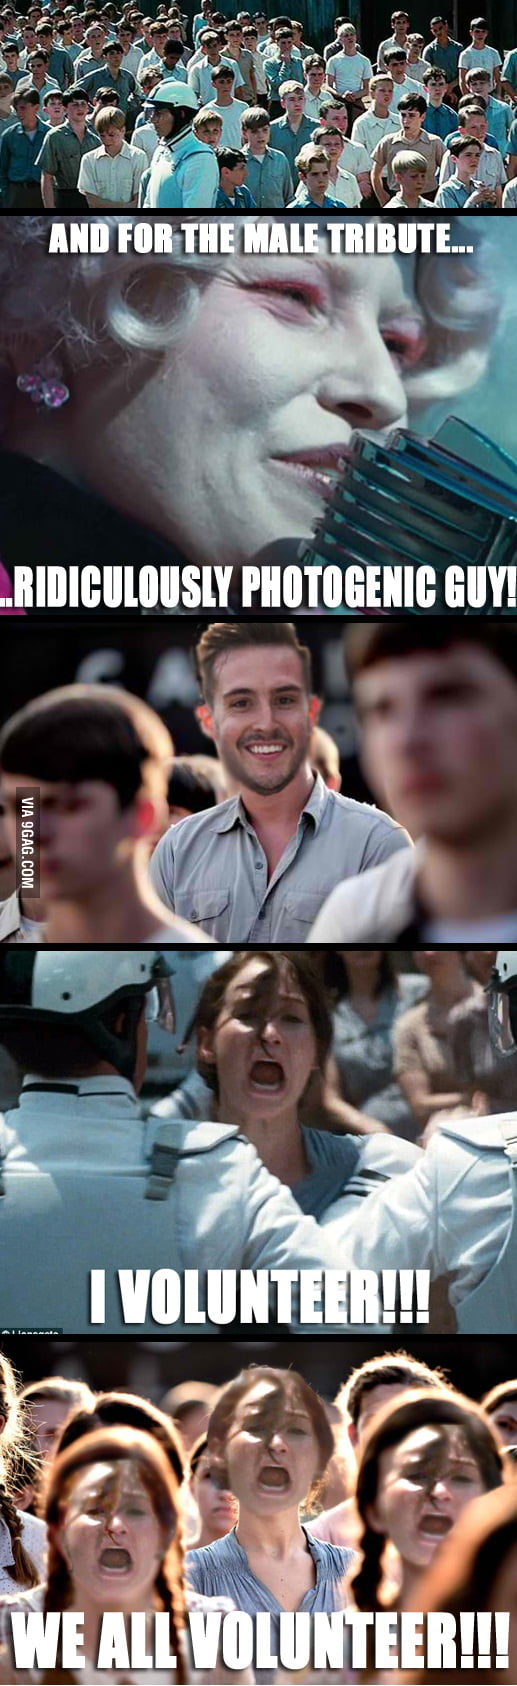 Ridiculously Photogenic Tribute.. Hope I'm doing this right.